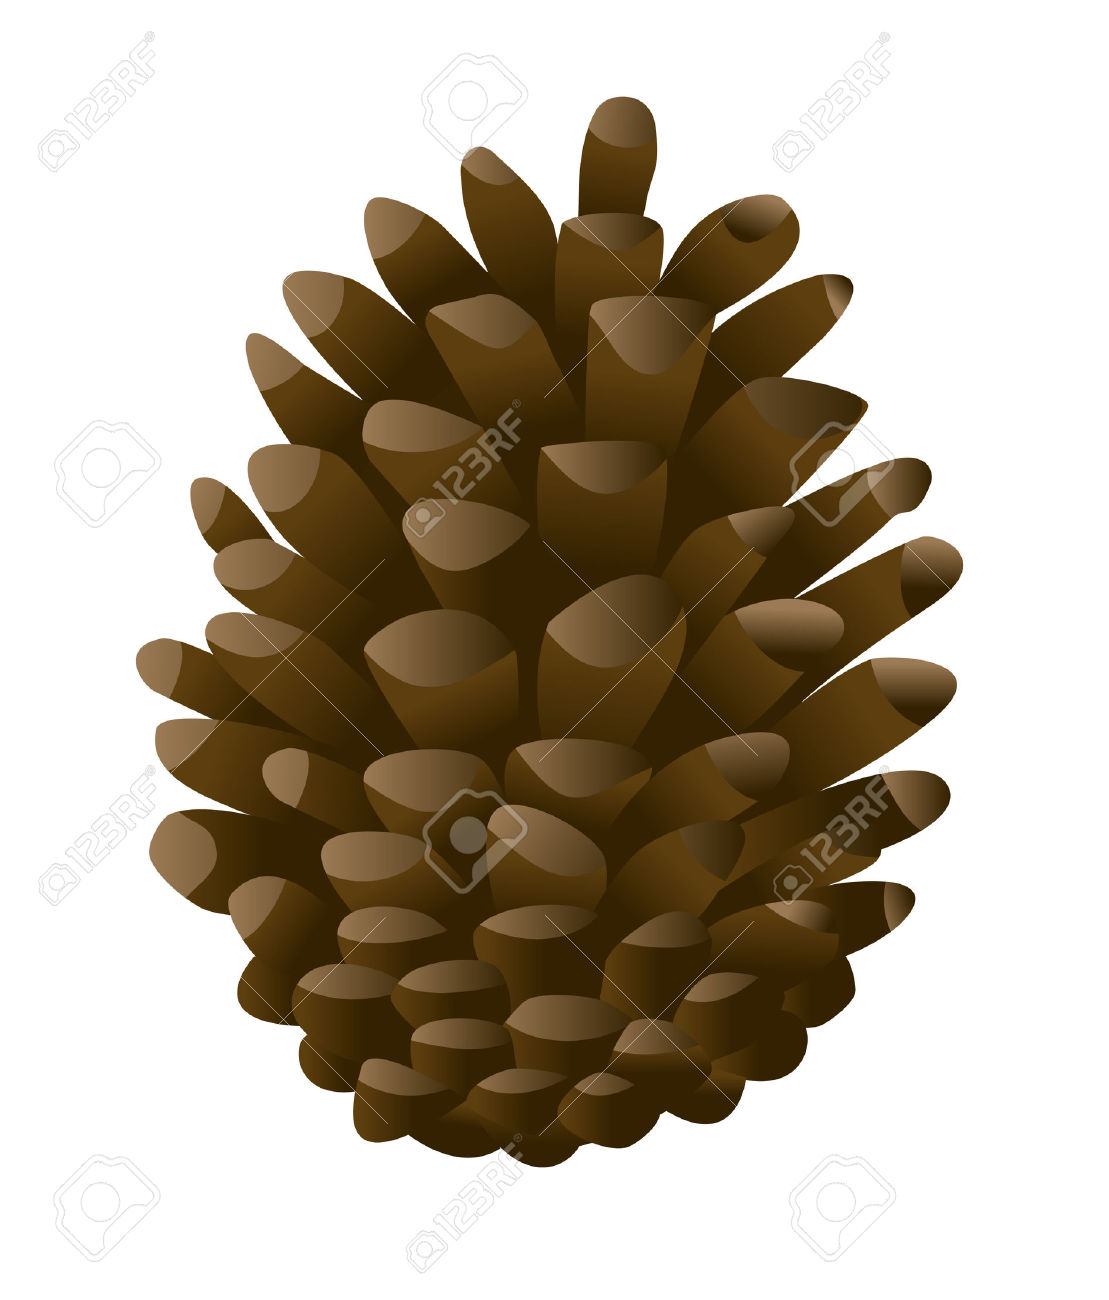 Pine Cone clipart cartoon Outline Cone Cone Pine collection